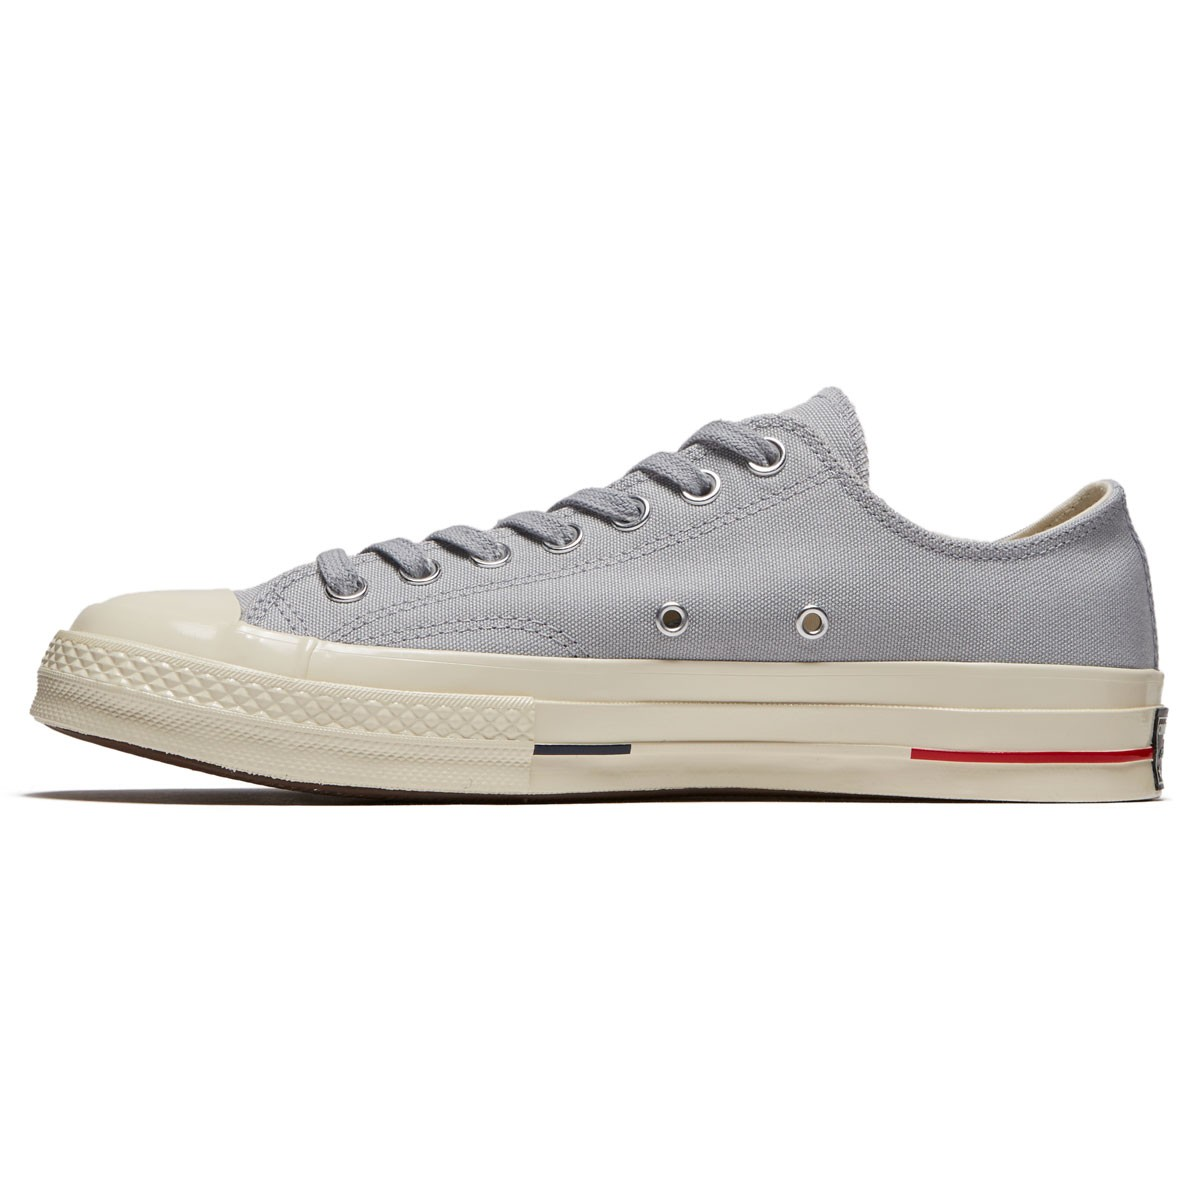 71215d9ef60 Converse Chuck Taylor All Star 70 Ox Shoes - Wolf Grey Navy Gym Red